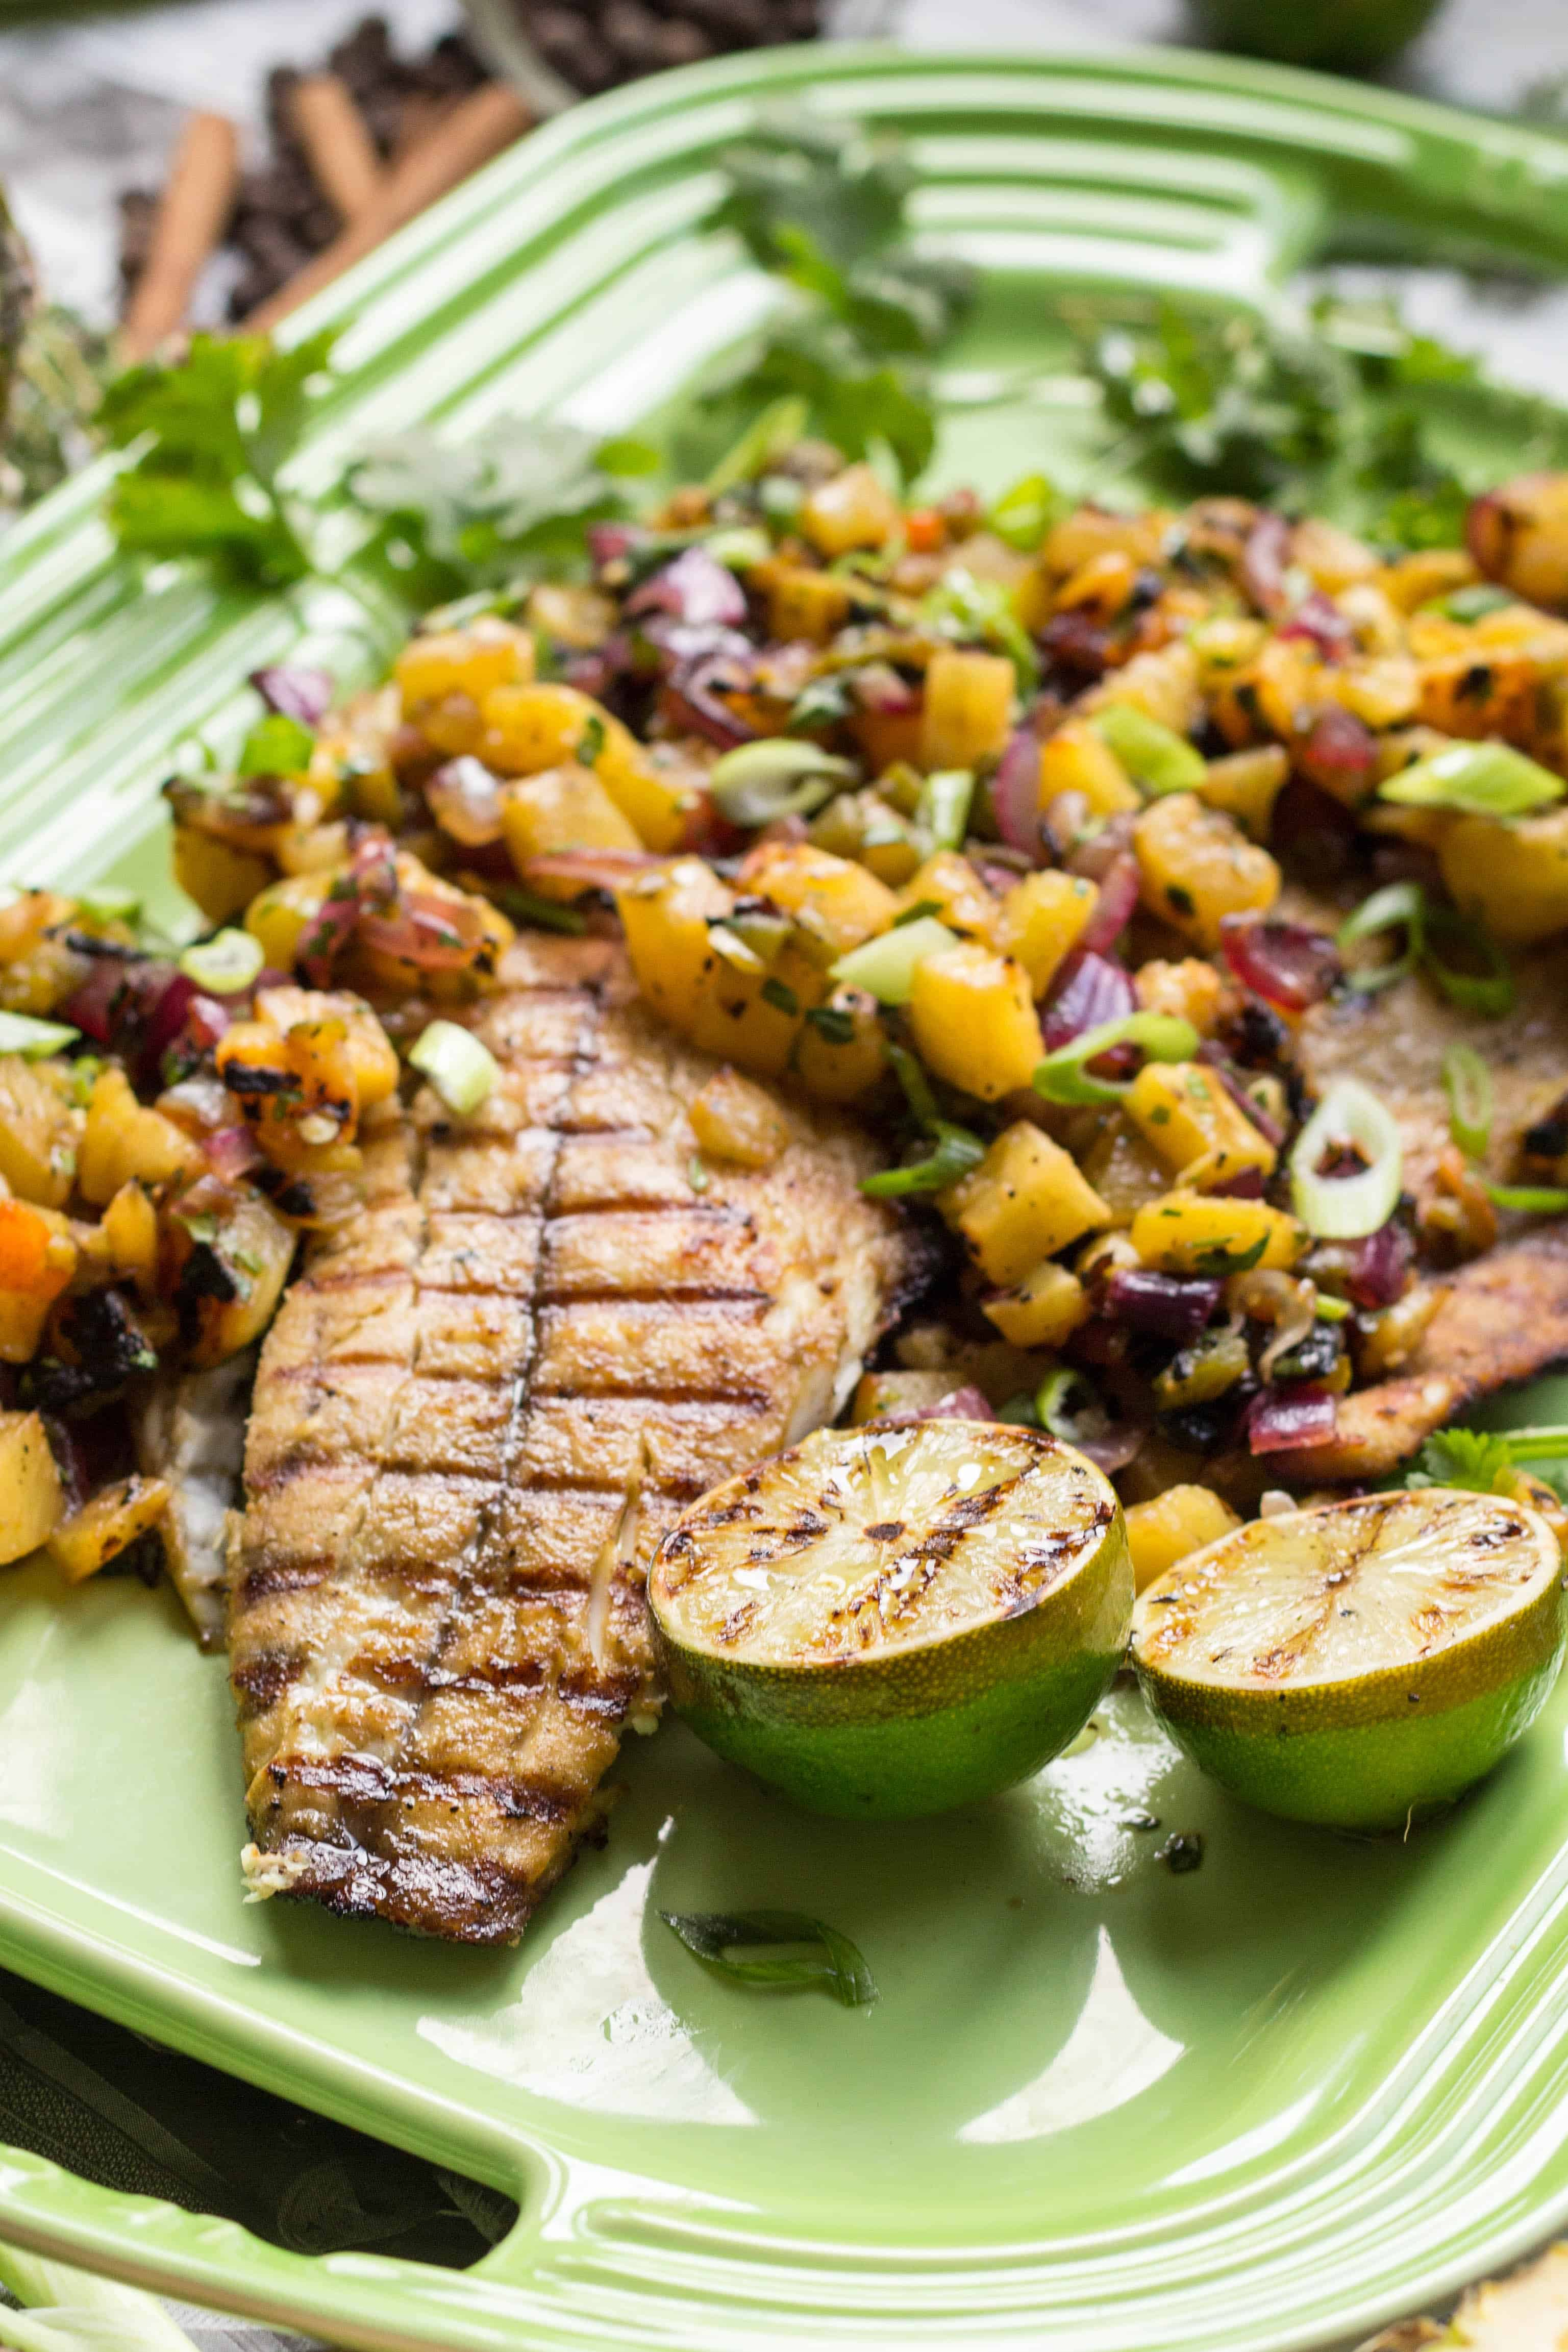 Serving platter with grilled barramundi, lime halves, and fresh pineapple salsa.